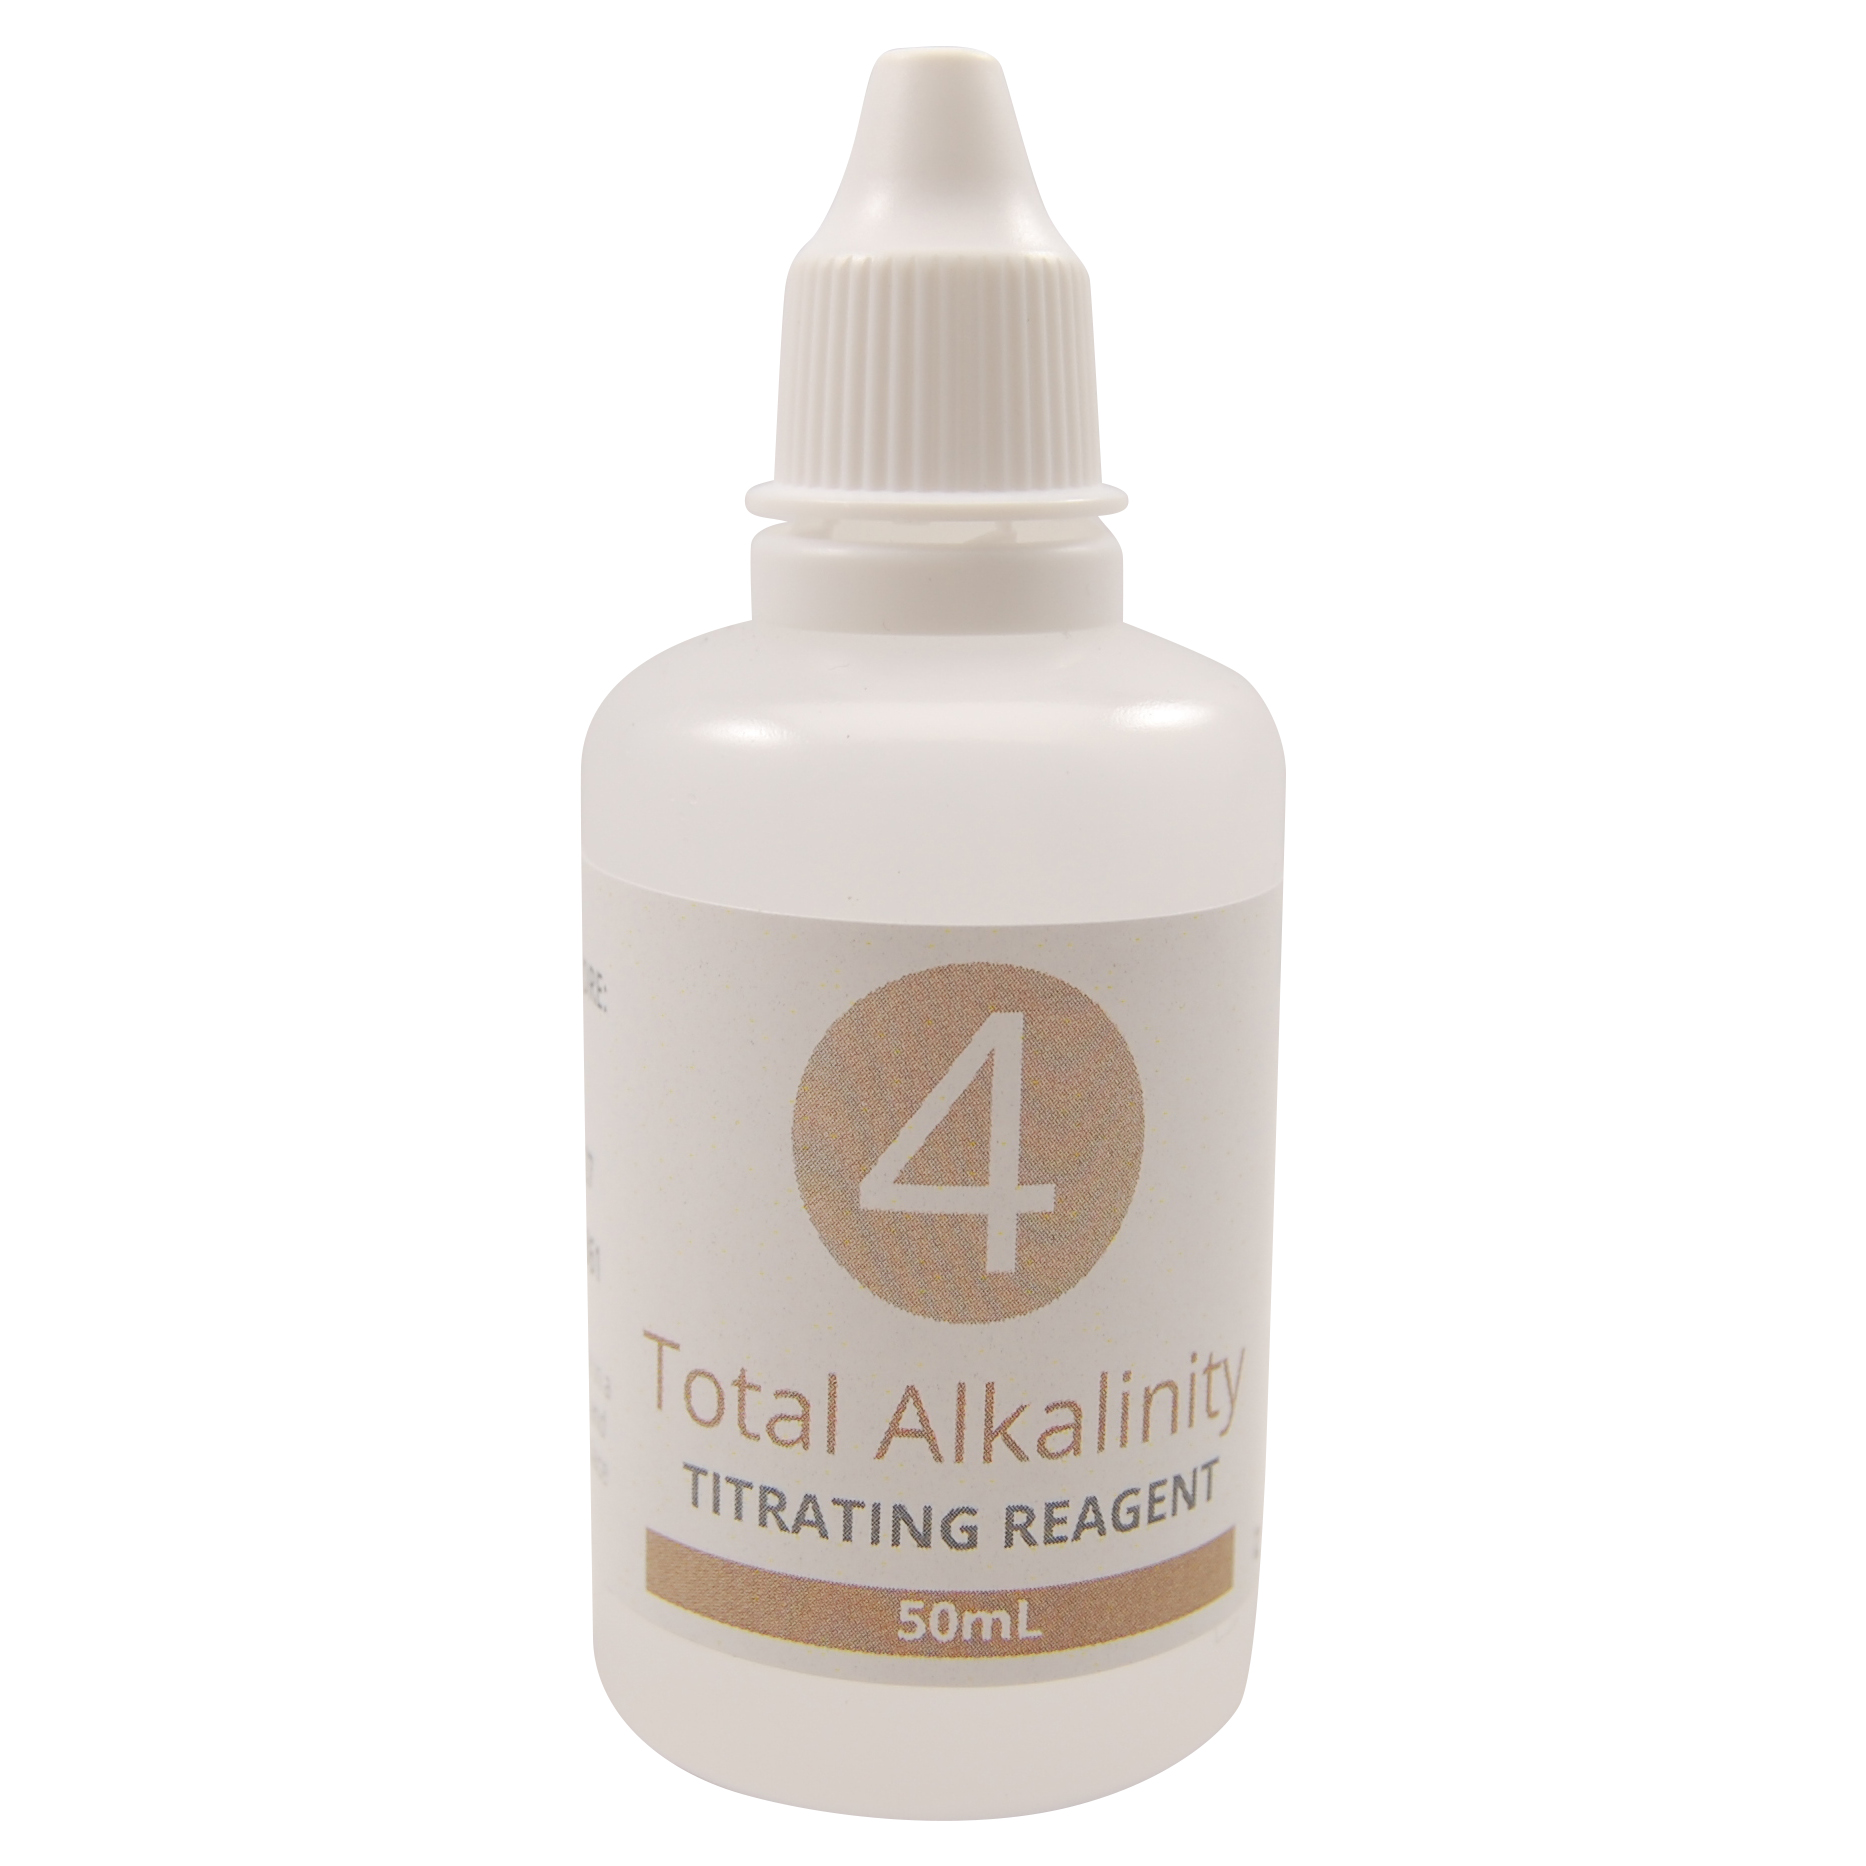 Total Alkalinity Titrating Reagent, 50mL